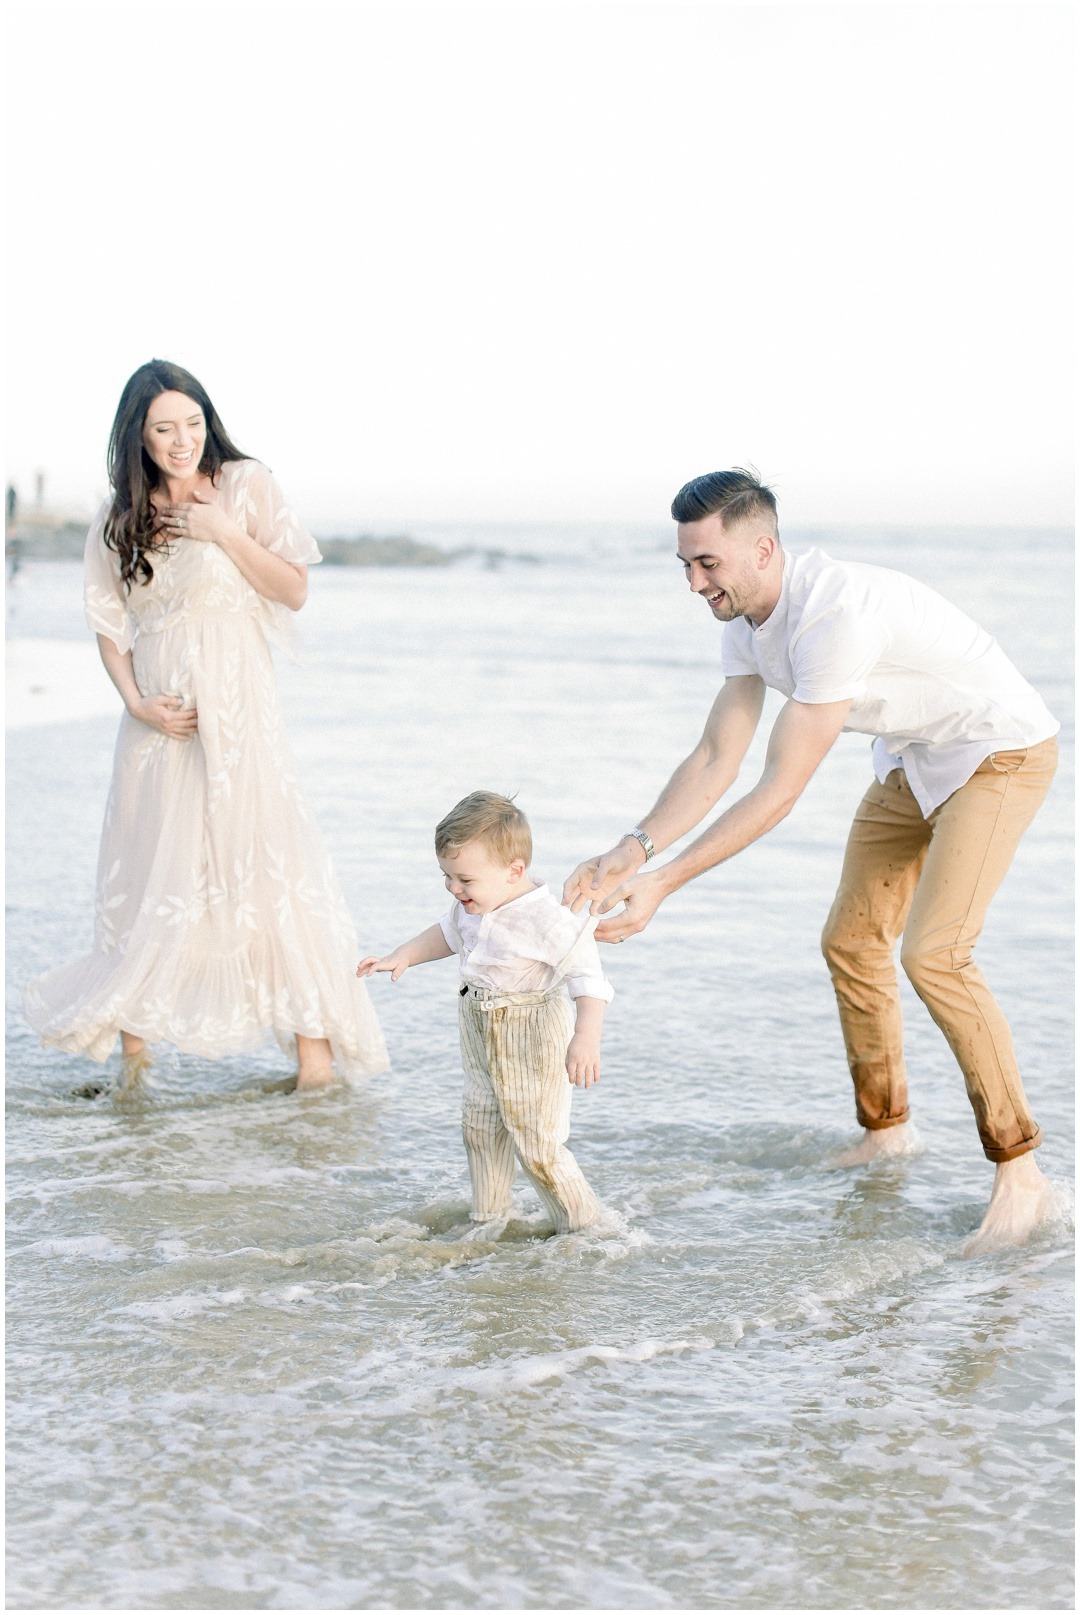 Newport_Beach_Newborn_Light_Airy_Natural_Photographer_Newport_Beach_Photographer_Orange_County_Family_Photographer_Cori_Kleckner_Photography_Huntington_Beach_Photographer_Family_OC_Newborn_Danielle_Lawley_Parker_Maternity_Family_Jordan_Lawley_3371.jpg